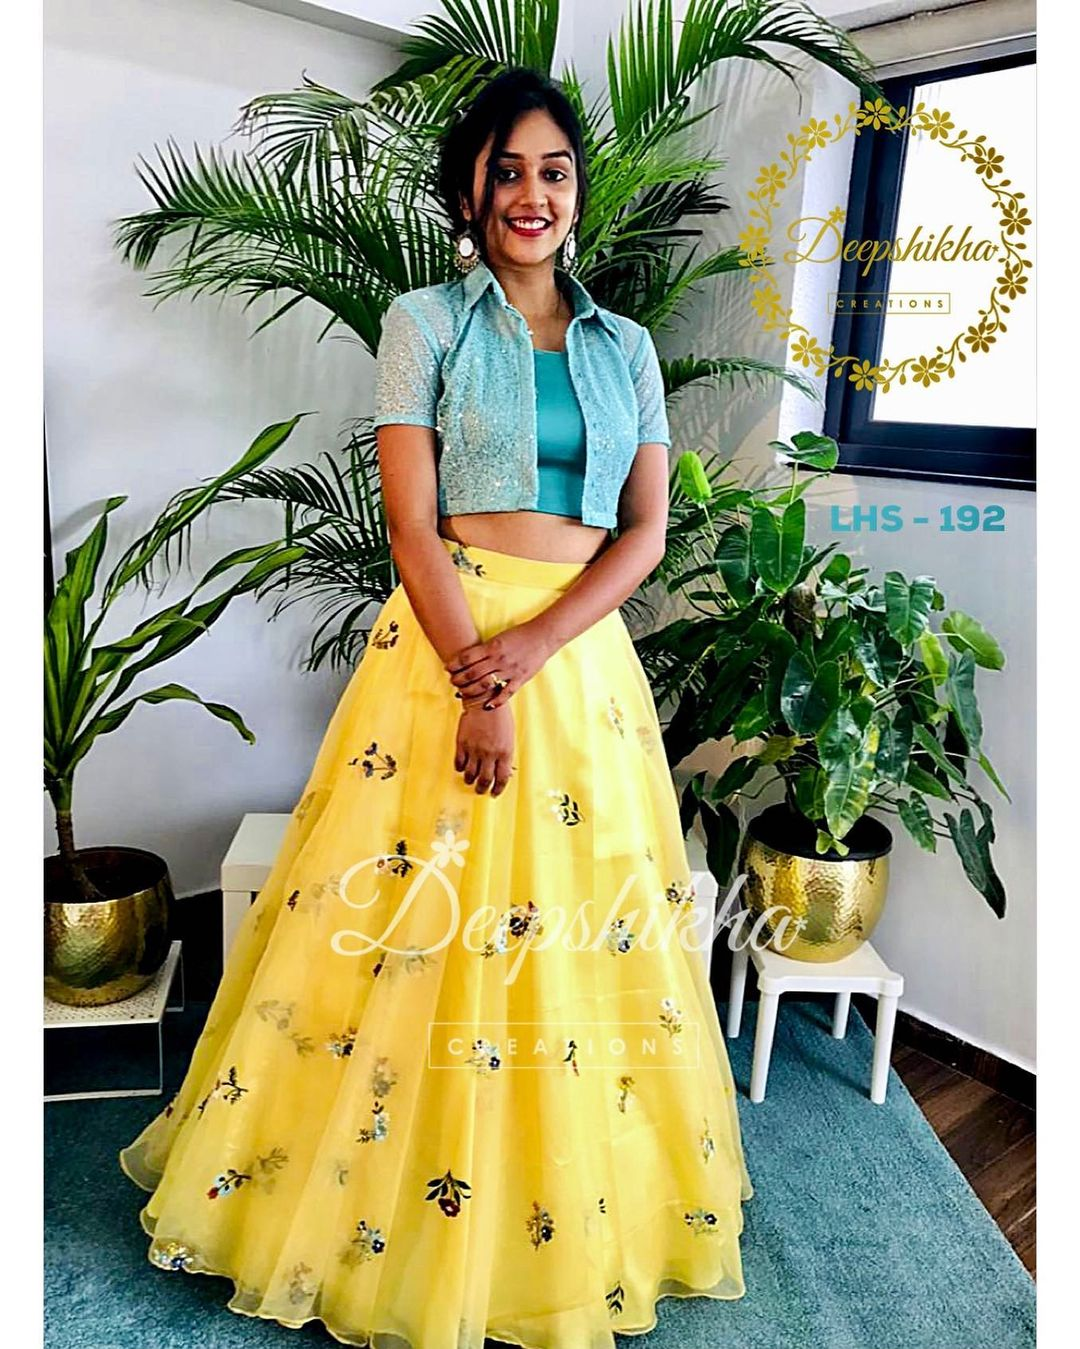 Beautiful yellow skirt and crop top with over coat. LHS - 192. For queries kindly whatsapp: +91 9059683293. 2021-09-21